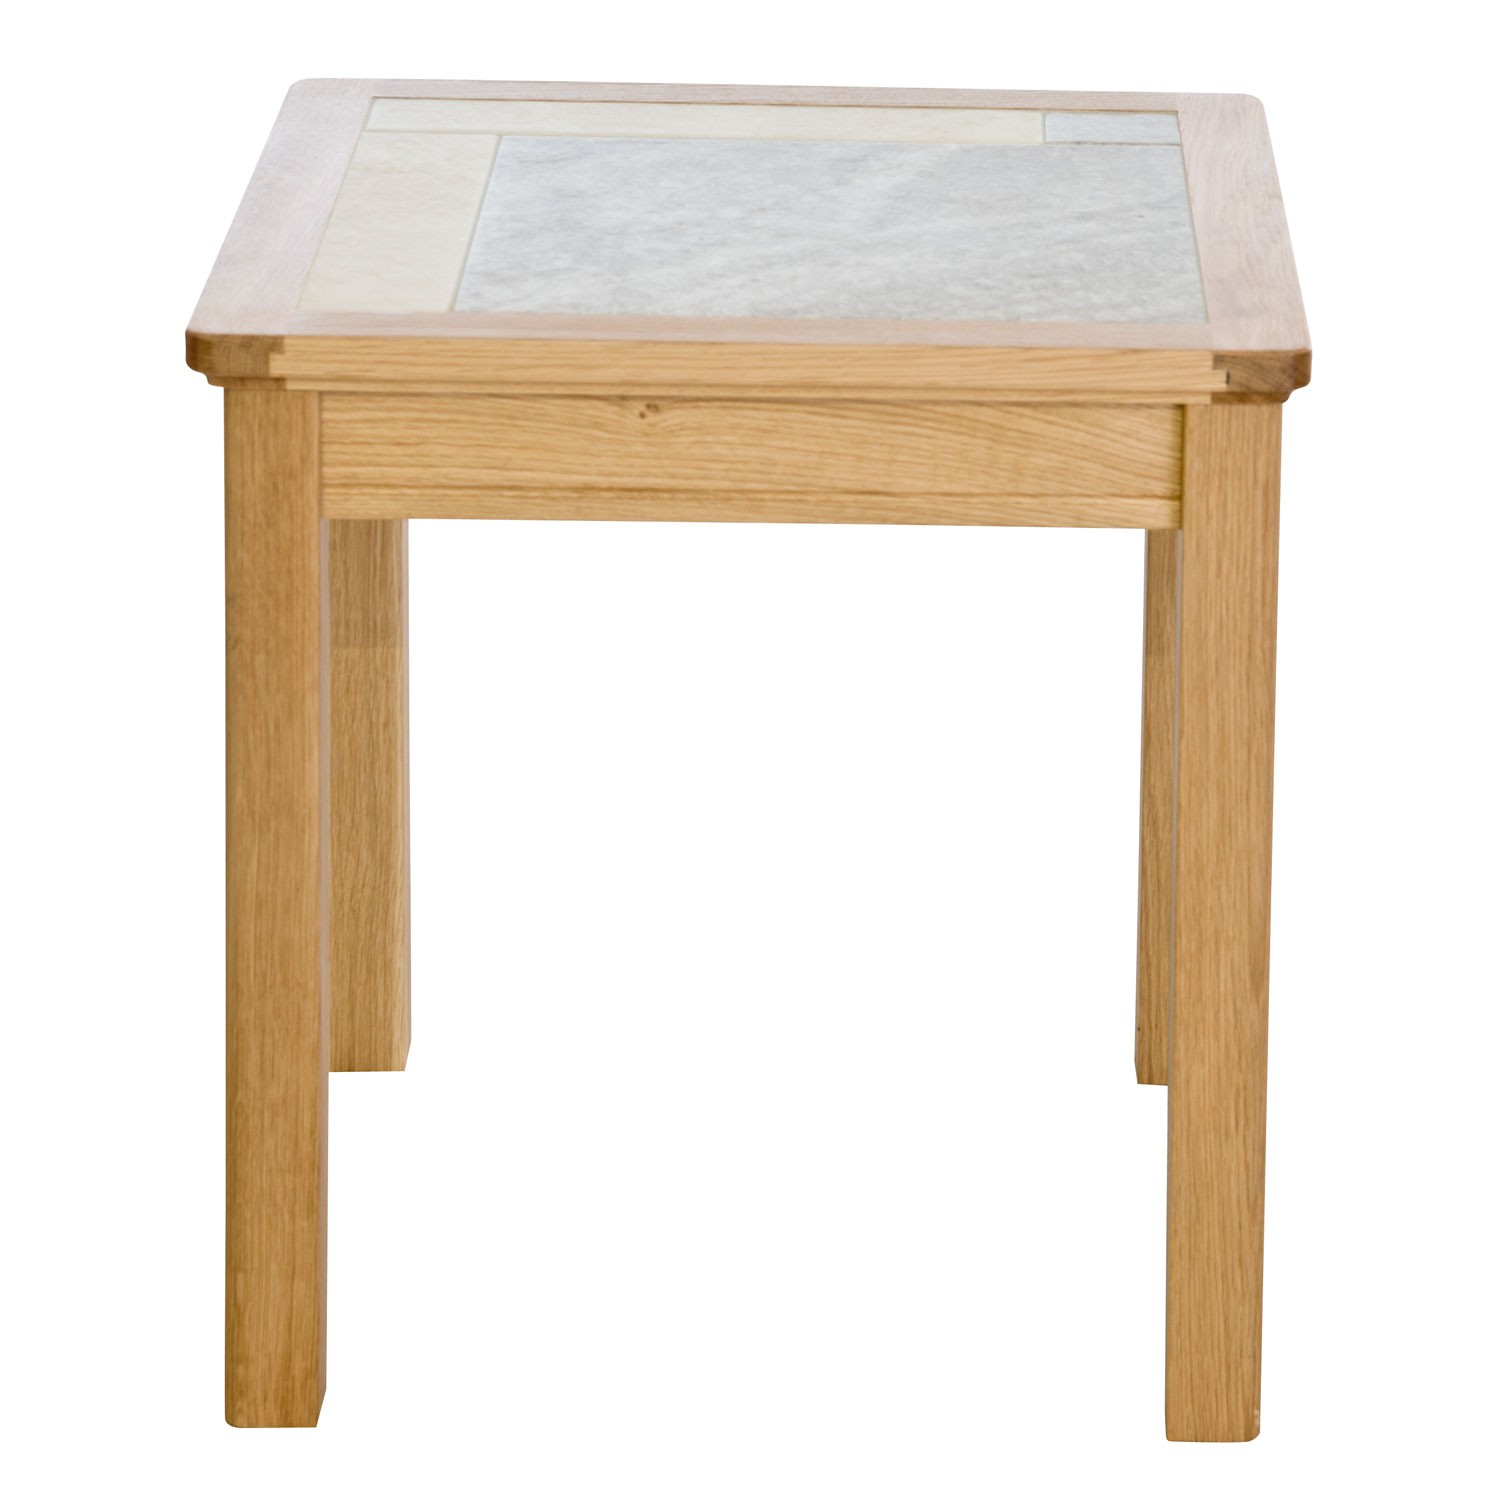 Amber Tile Top Lamp Table